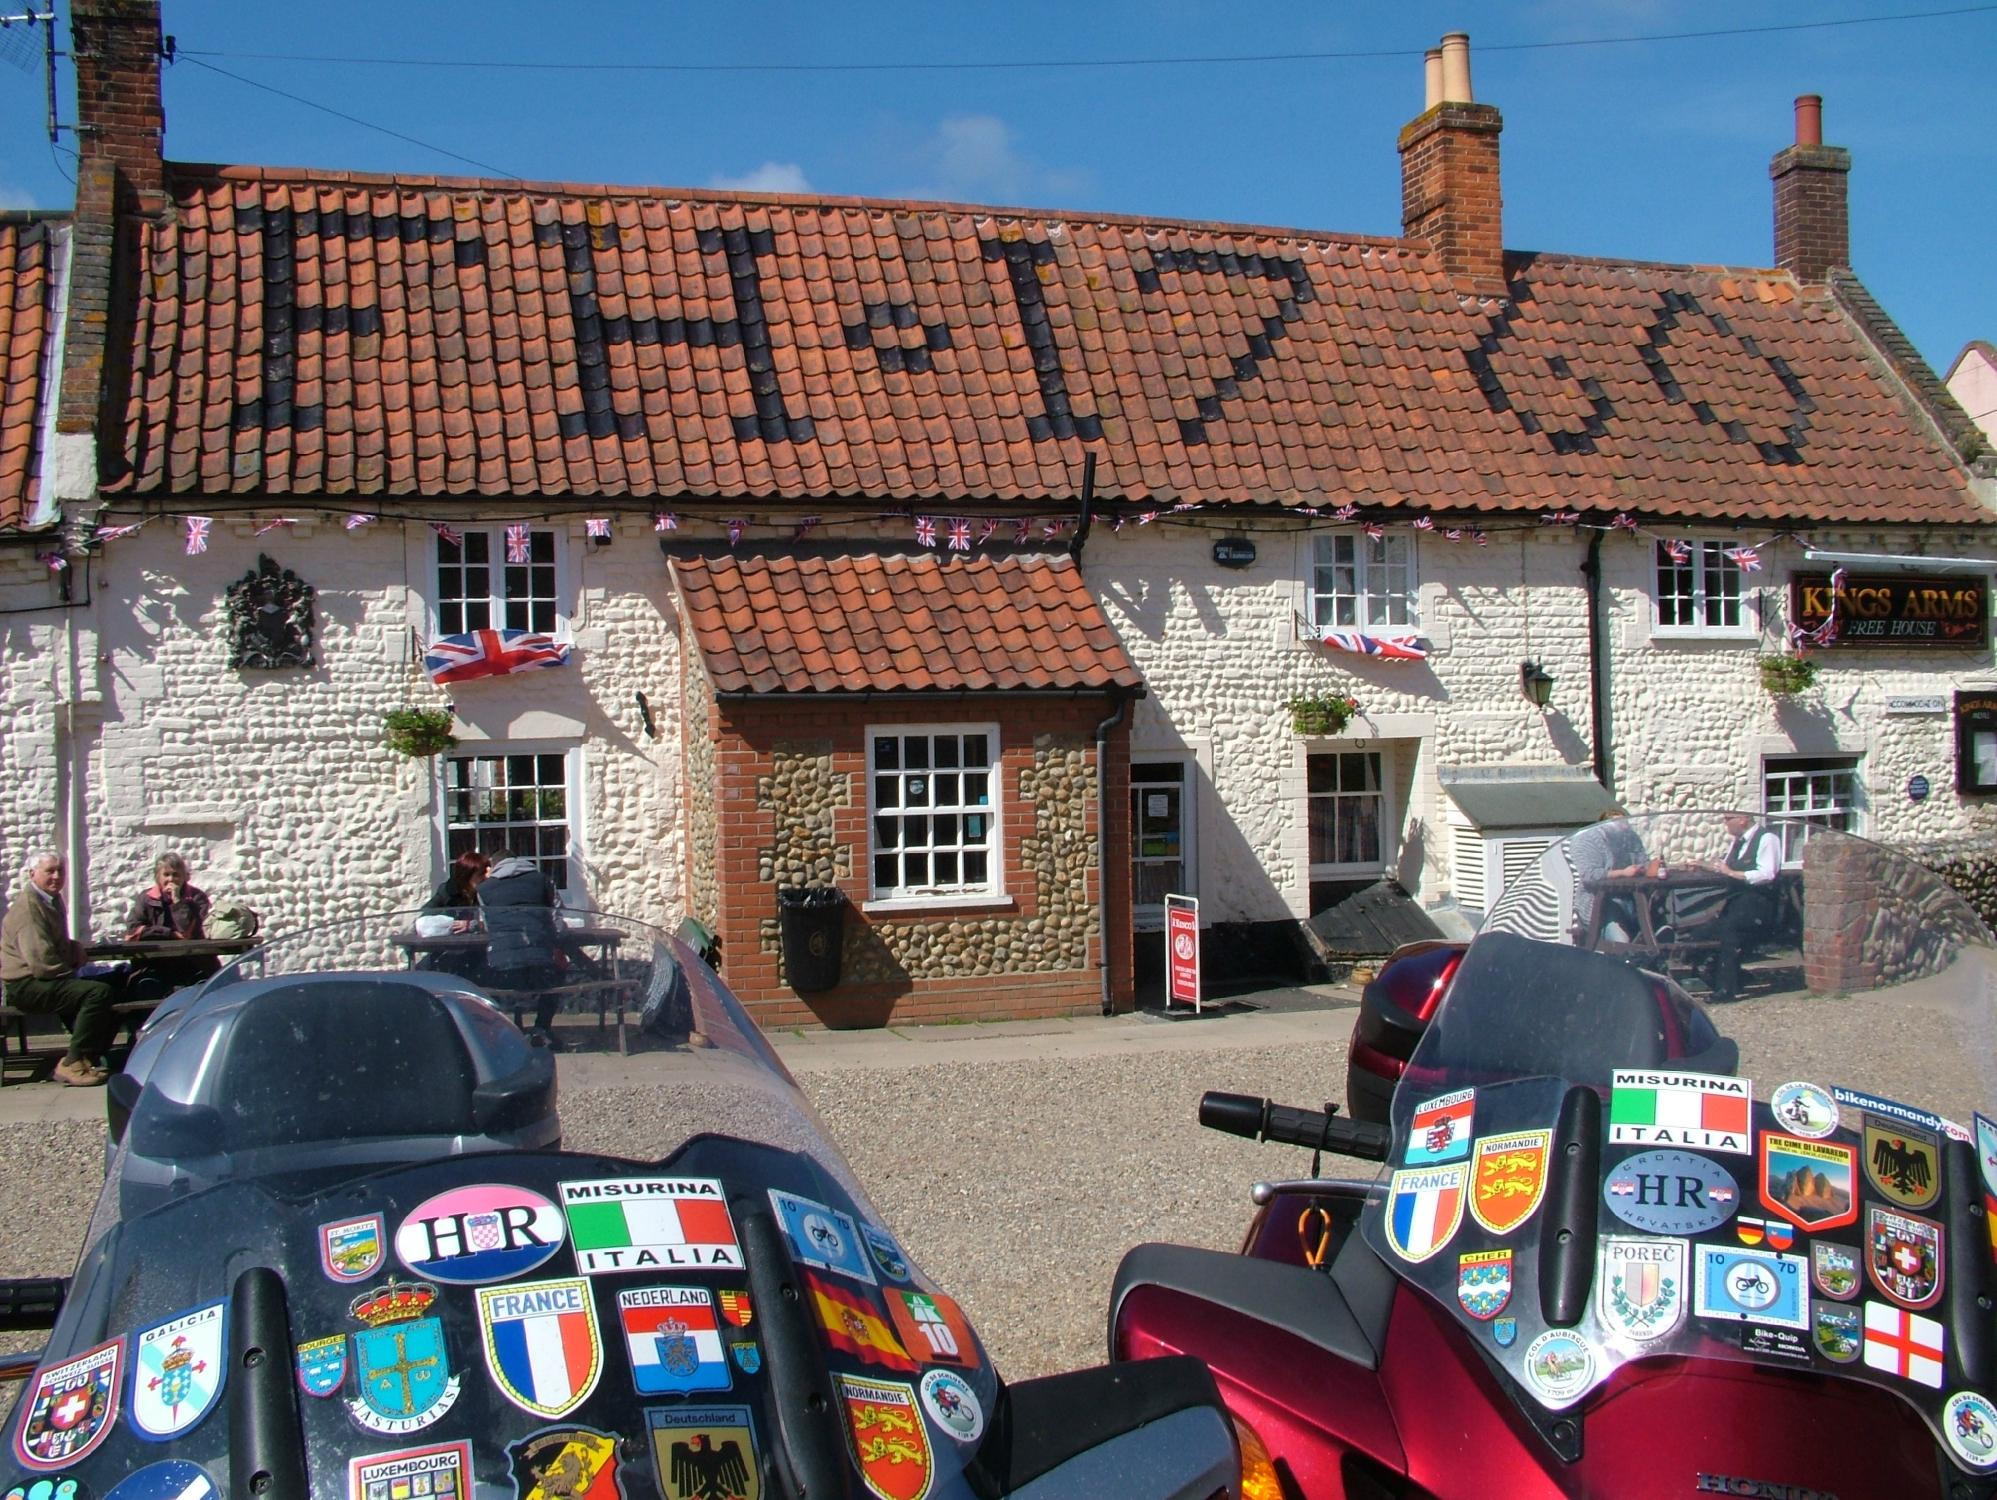 The King's Arms Public House